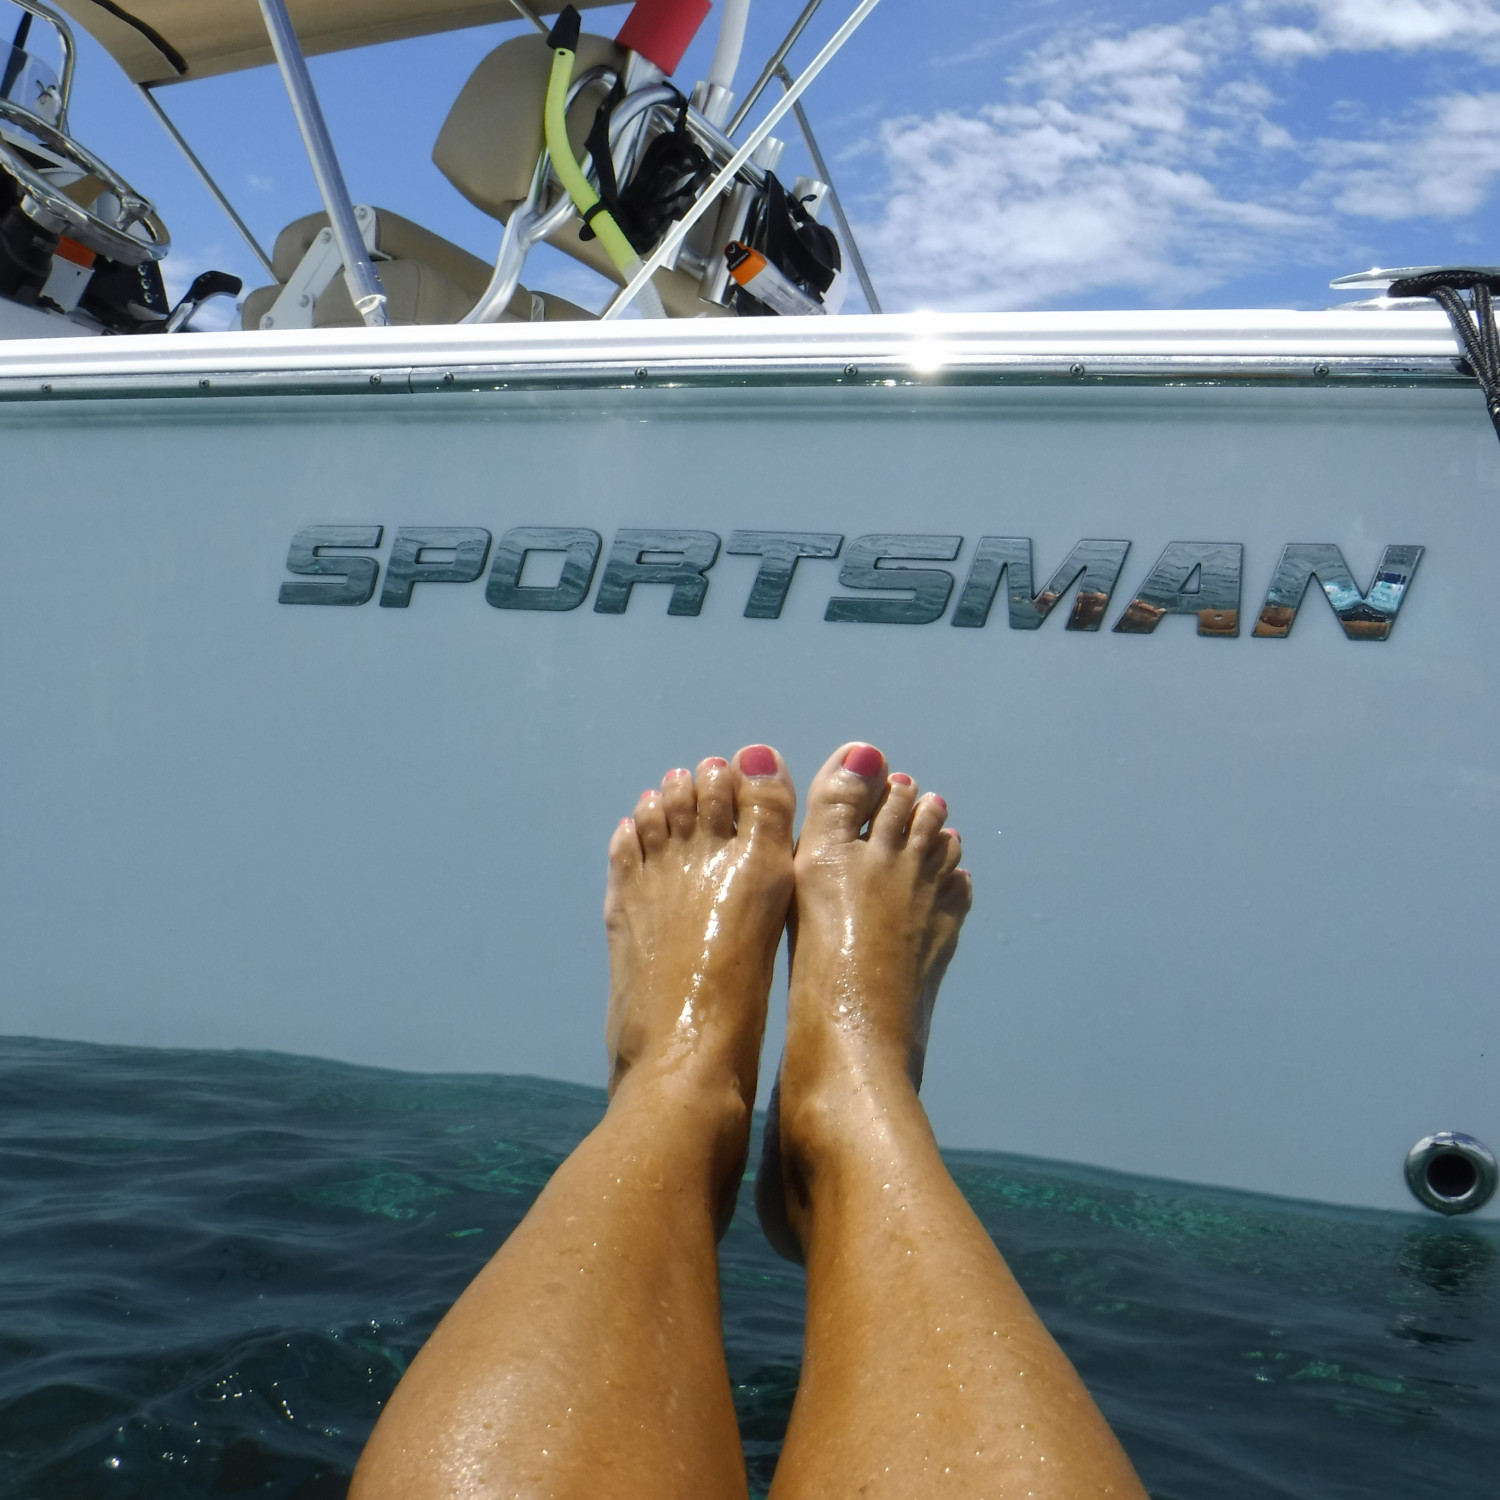 Title: Chillaxing in the Atlantic 6 miles south of Cudjoe Key, in Florida - On board their Sportsman Masters 227 Bay Boat - Location: 6 miles off shore in Cudjoe Key - Atlantic side. Participating in the Photo Contest #SportsmanFebruary2018